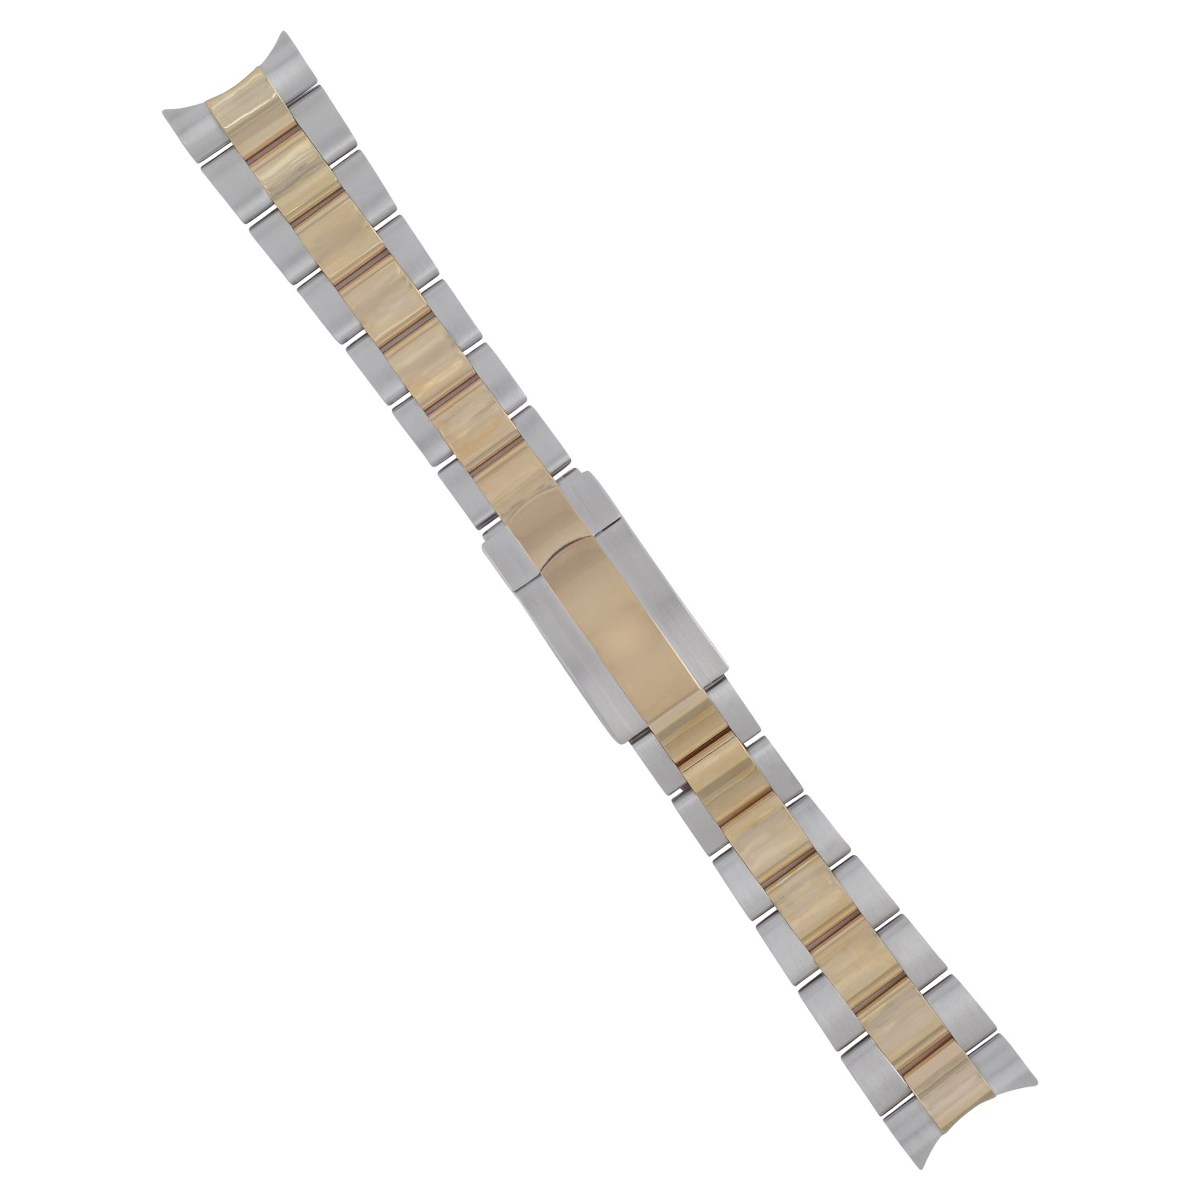 20MM 14K GOLD TWO TONE OYSTER WATCH BAND FOR ROLEX 116133 116613LN SOLID END